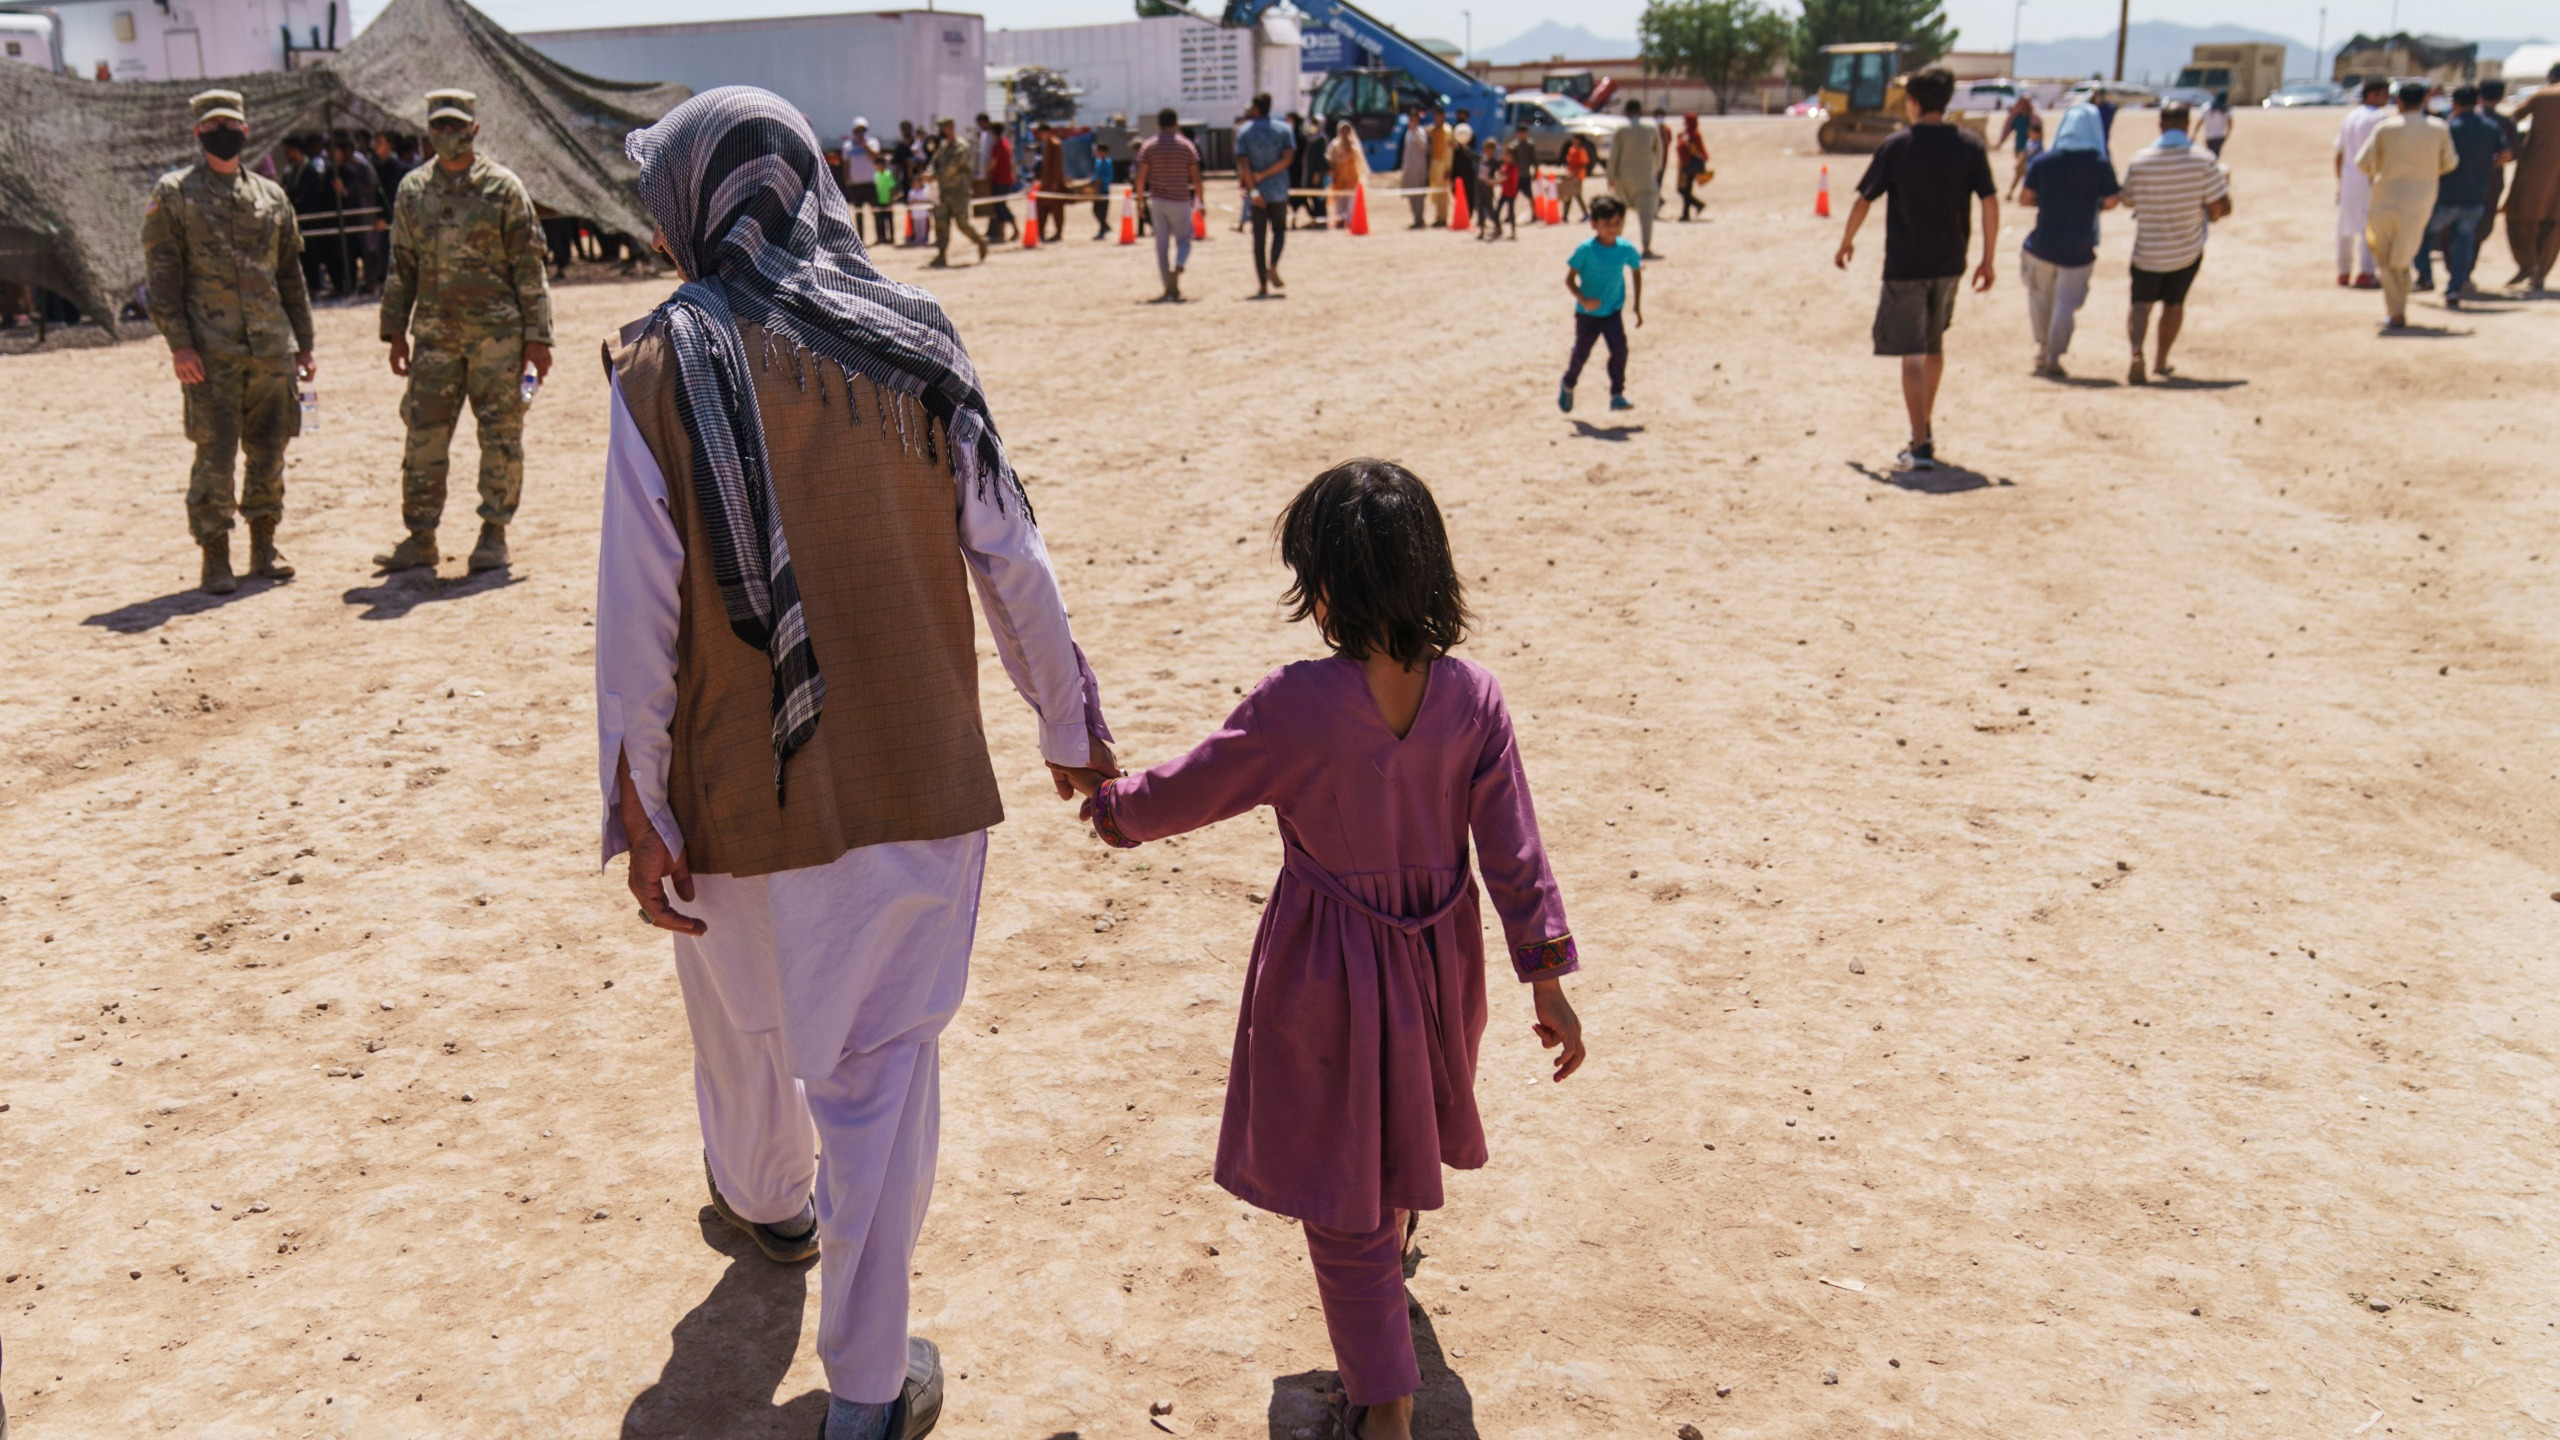 A man walks with a child through Fort Bliss' Doña Ana Village where Afghan refugees are being housed, Friday, Sept. 10, 2021. The Biden administration provided the first public look inside the U.S. military base where Afghans airlifted out of Afghanistan are screened, amid questions about how the government is caring for the refugees and vetting them. (AP Photo/David Goldman)